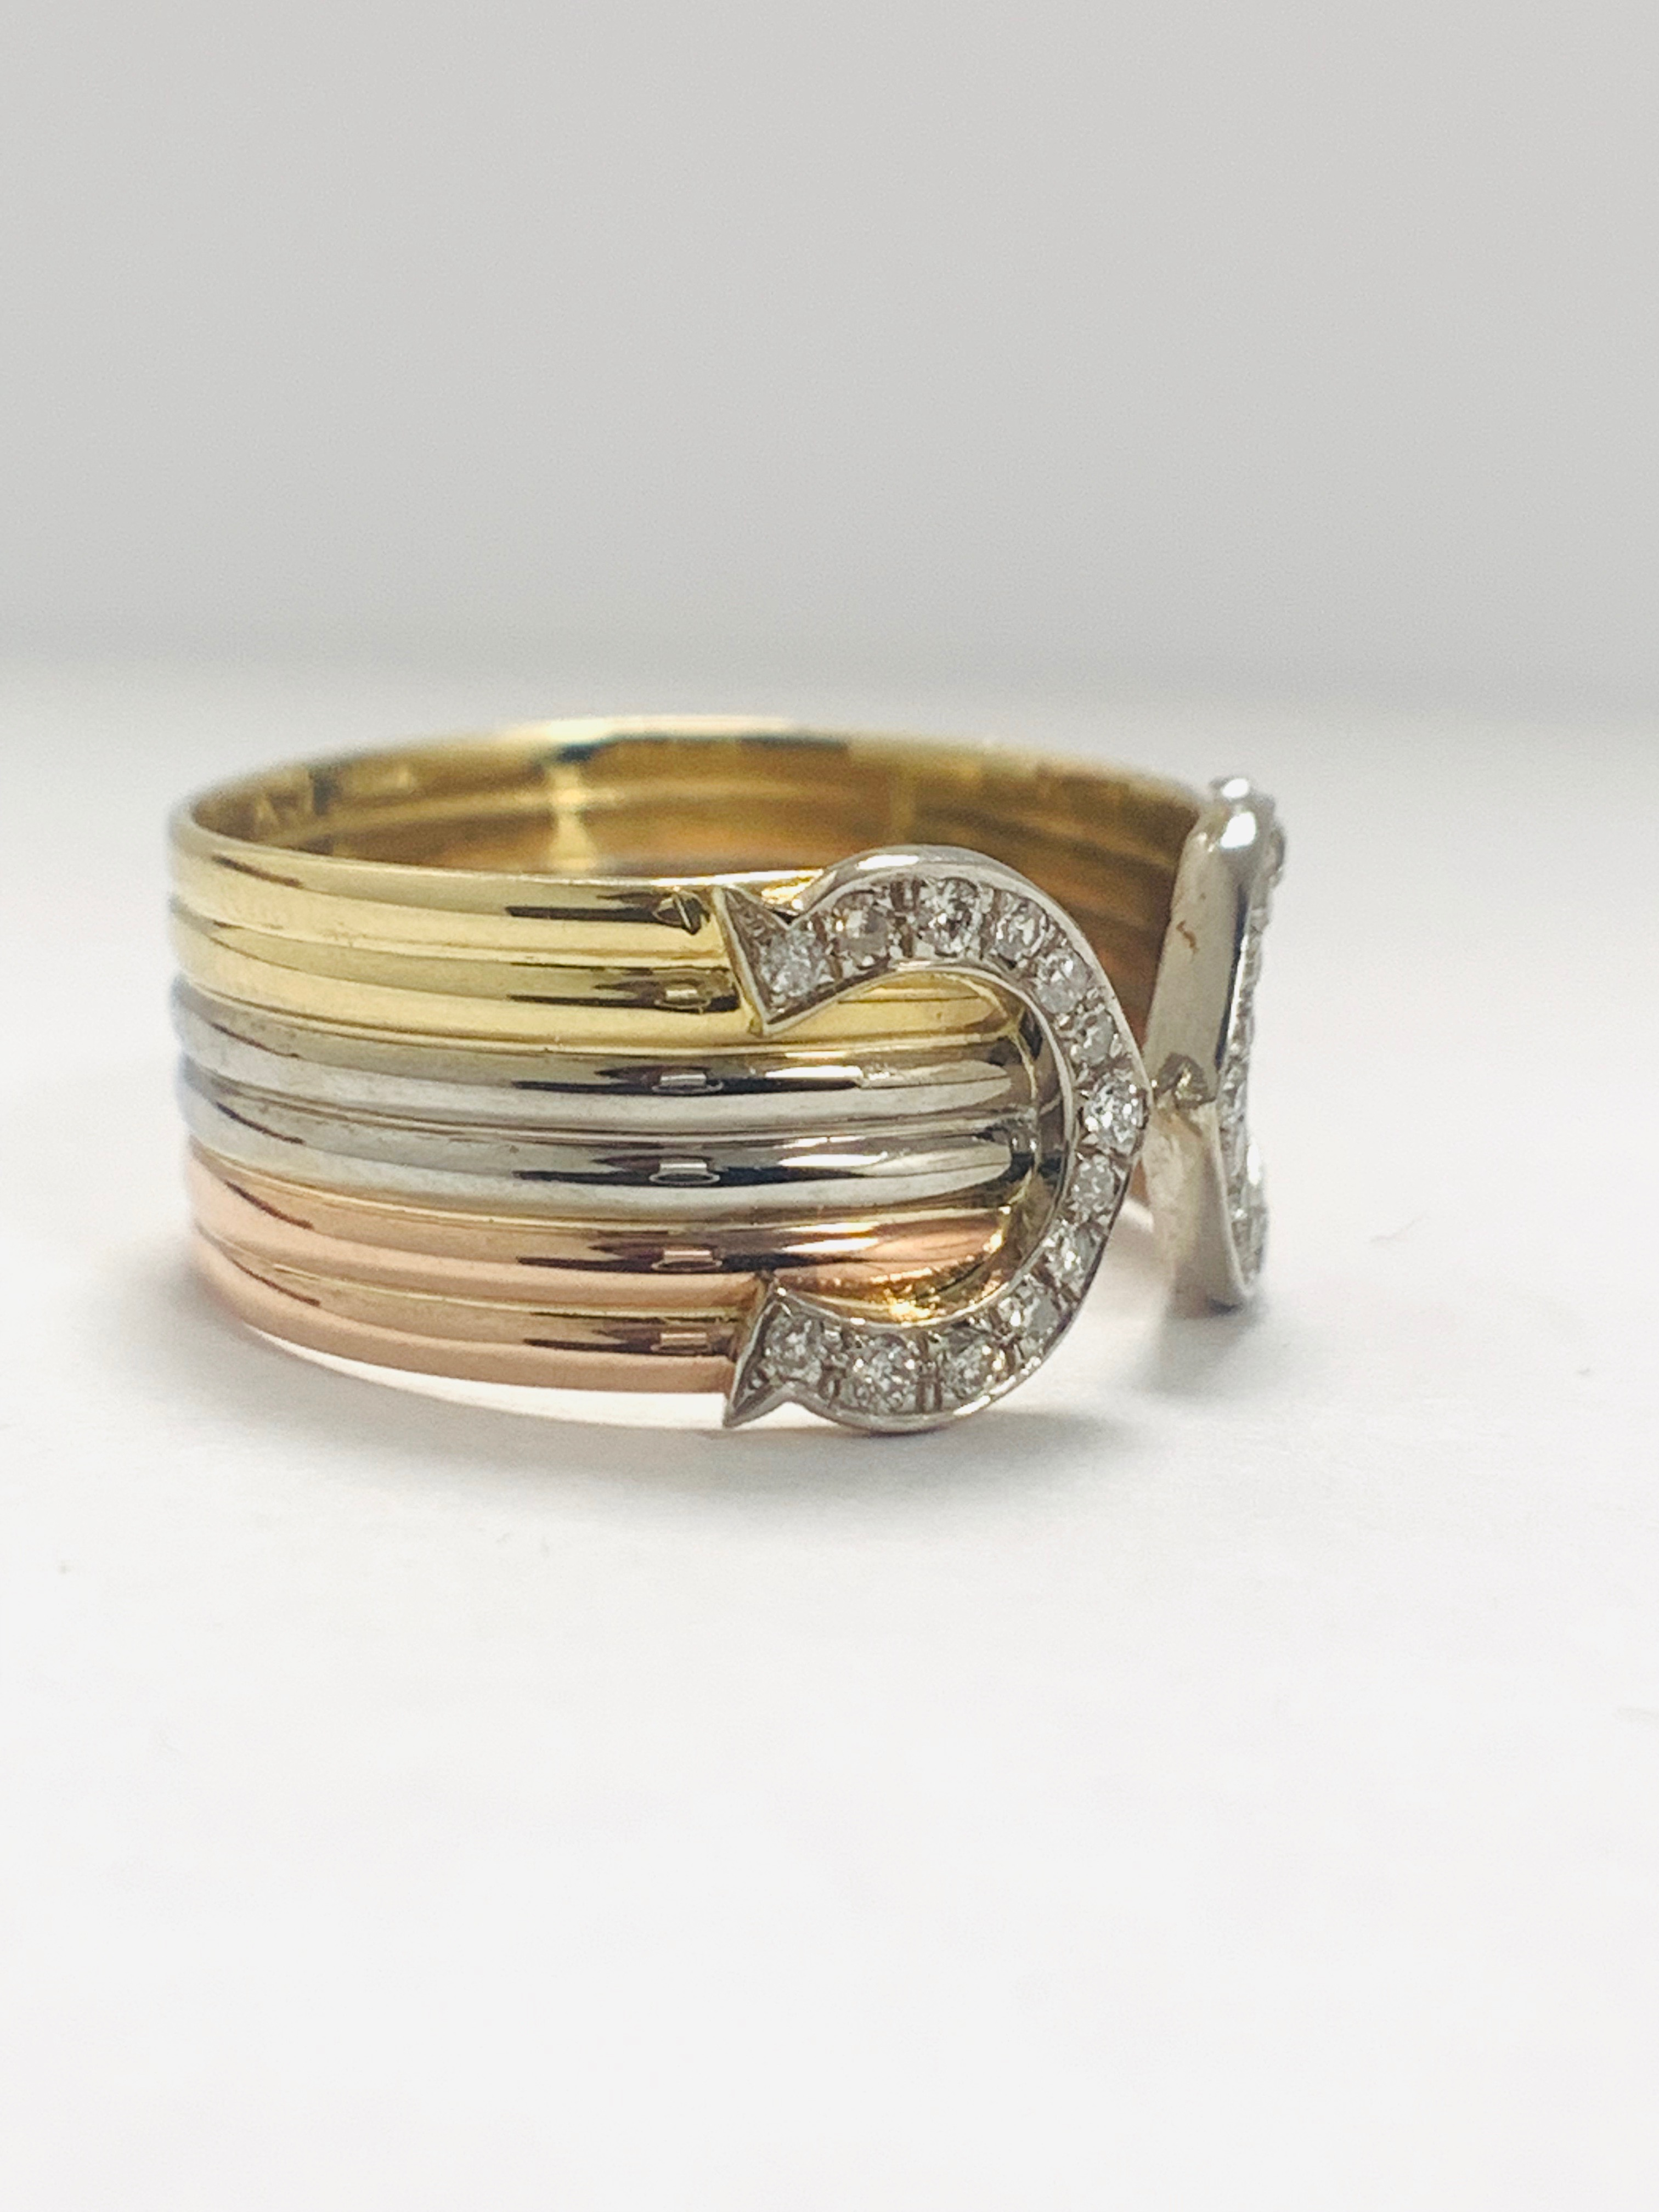 Lot 59 - 18ct 3 Toned Gold Diamond Chanel Ring